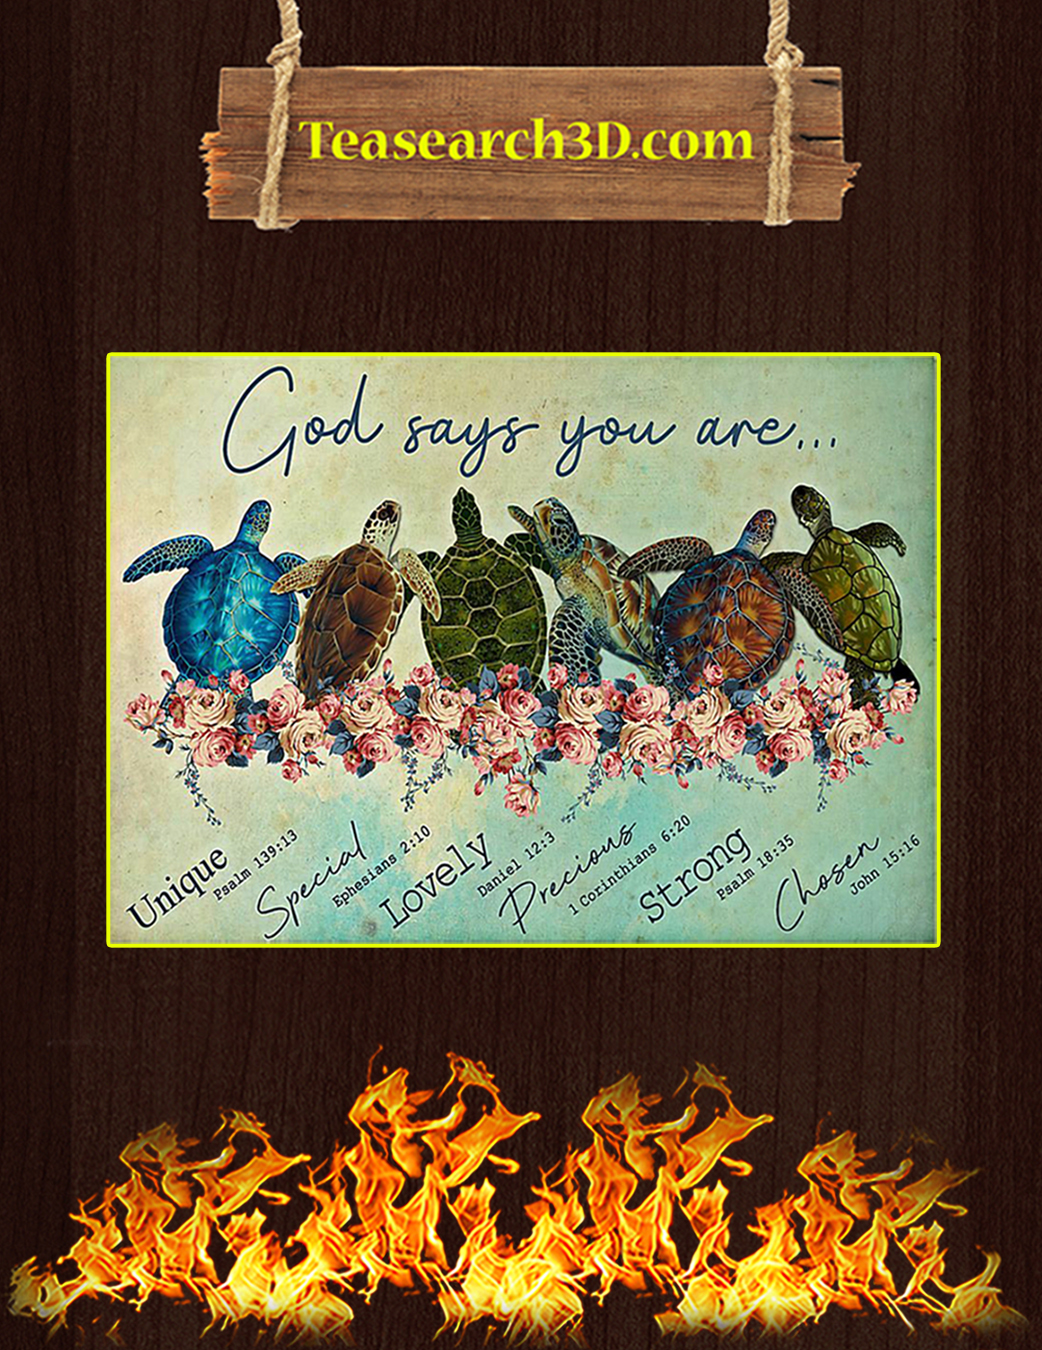 Turtle god says you are poster A1